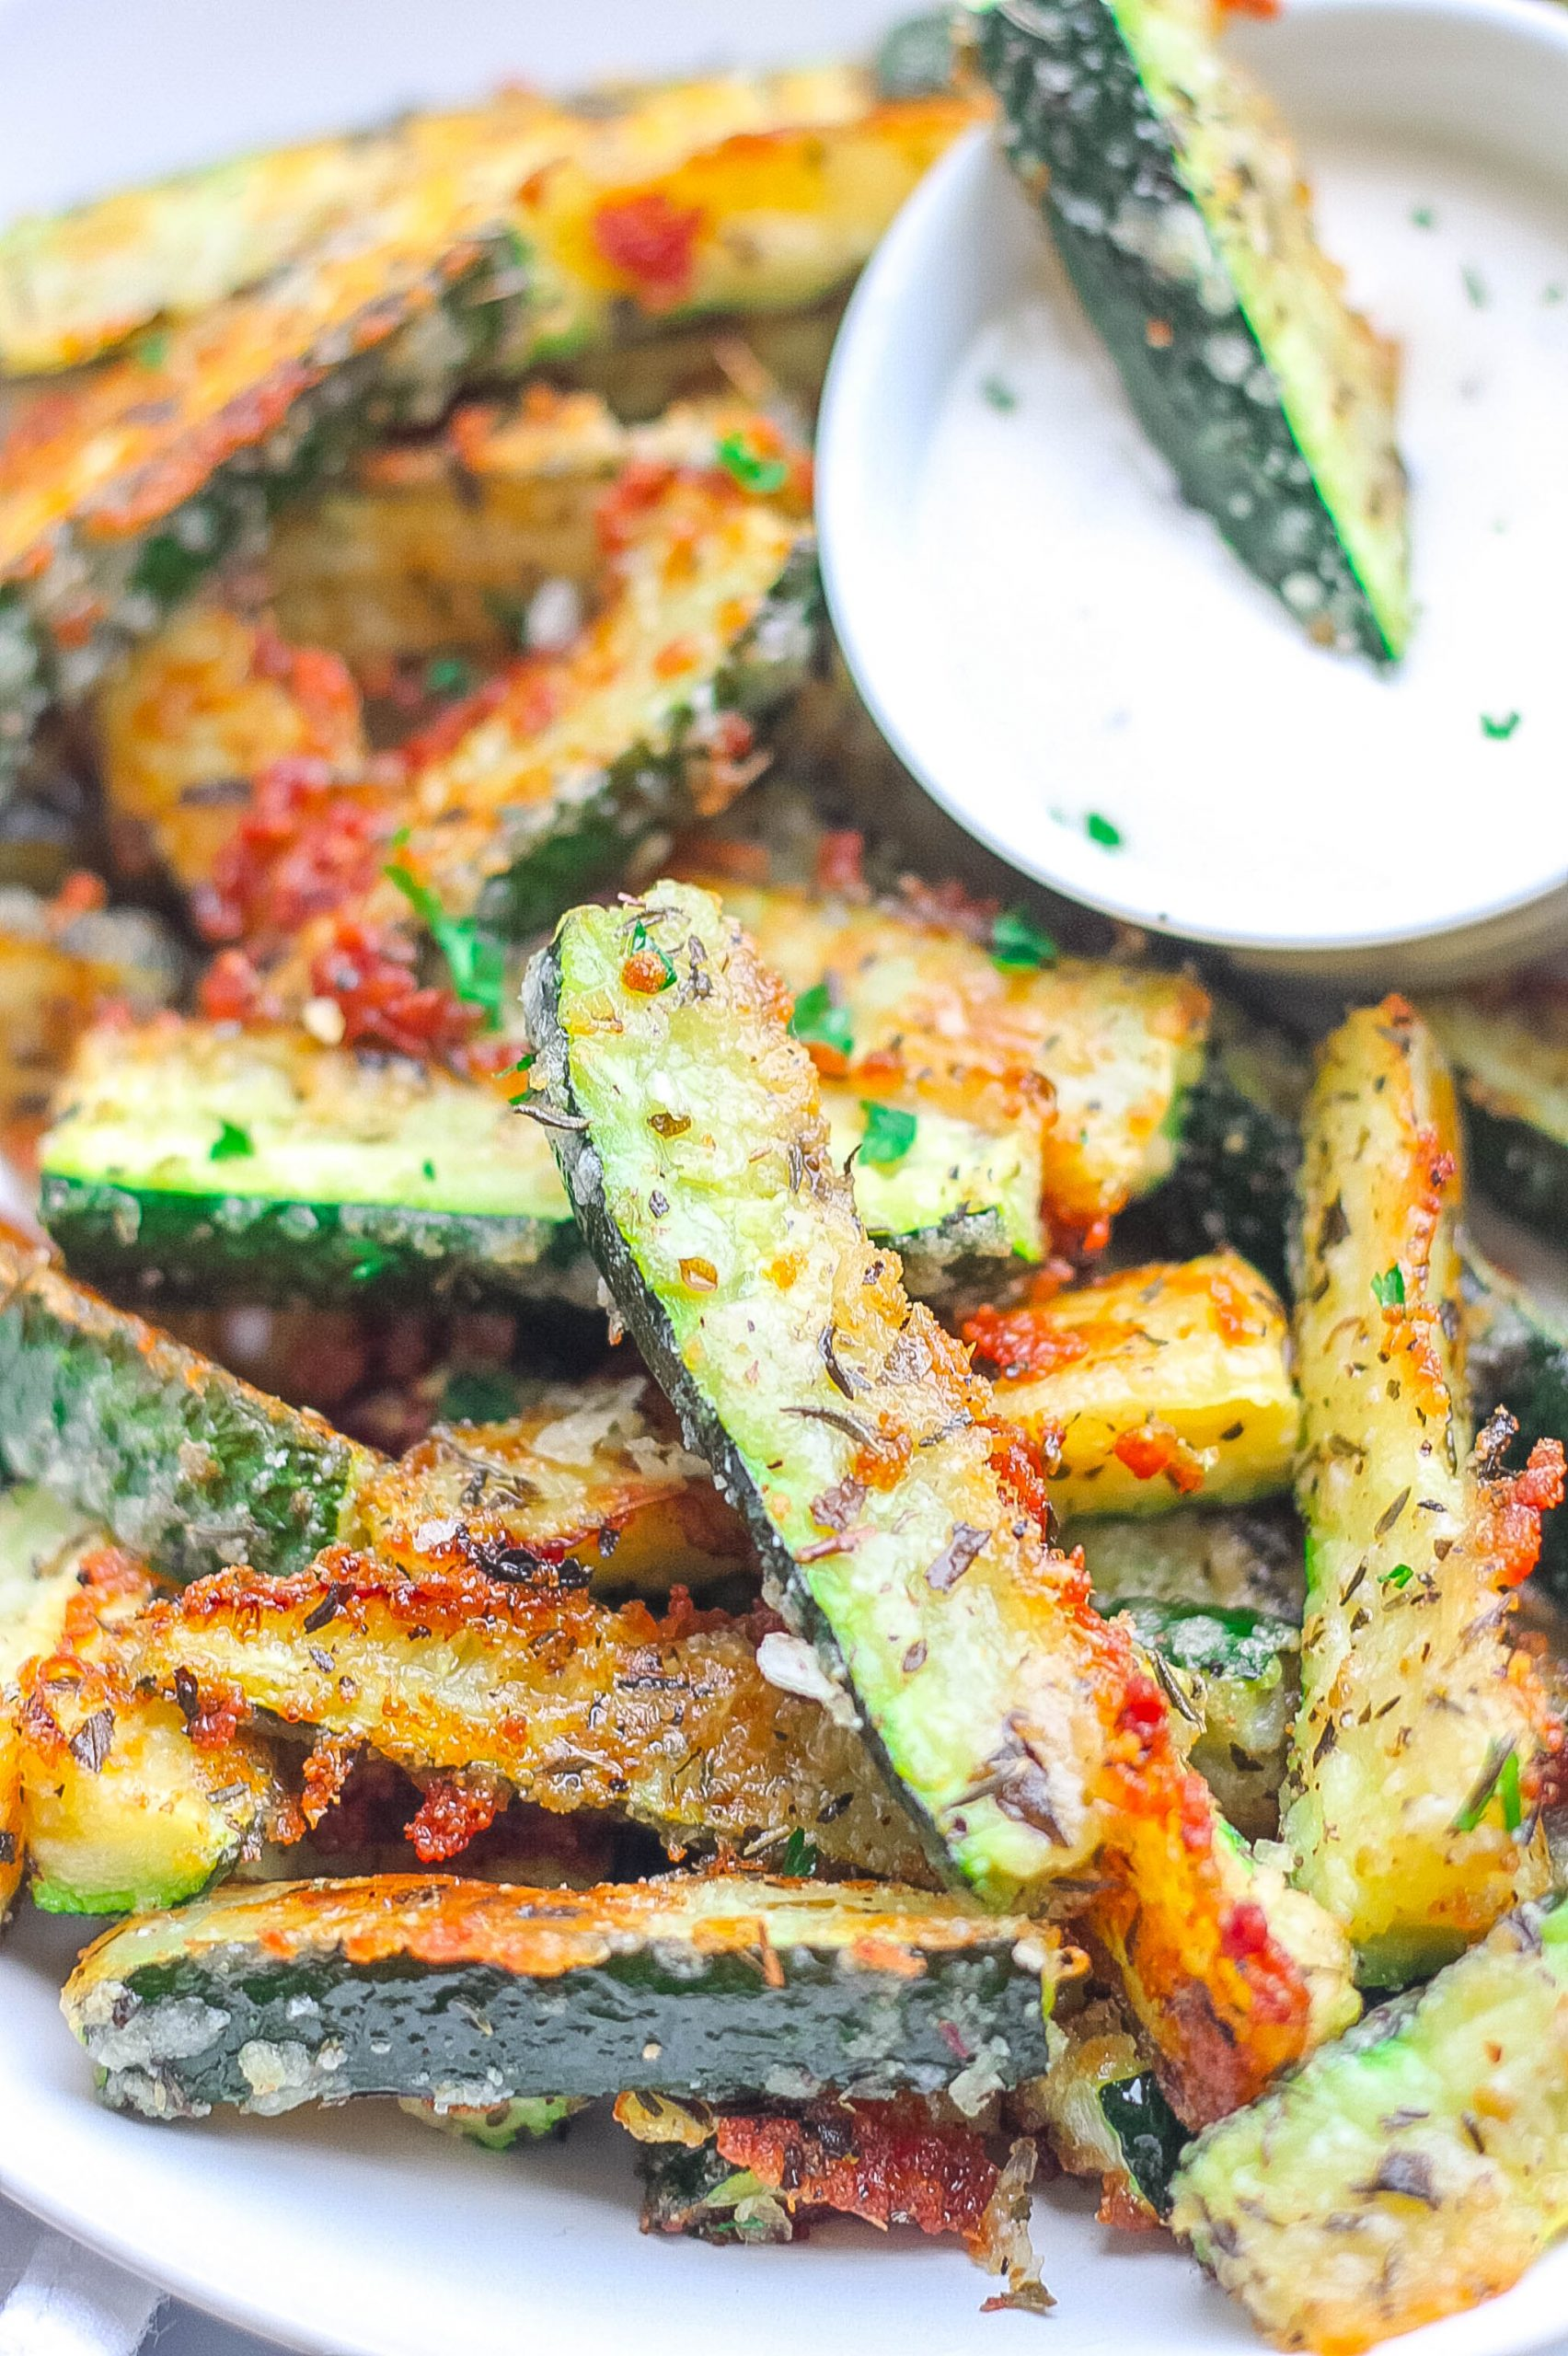 crispy zucchini fries on a plate with dipping sauce